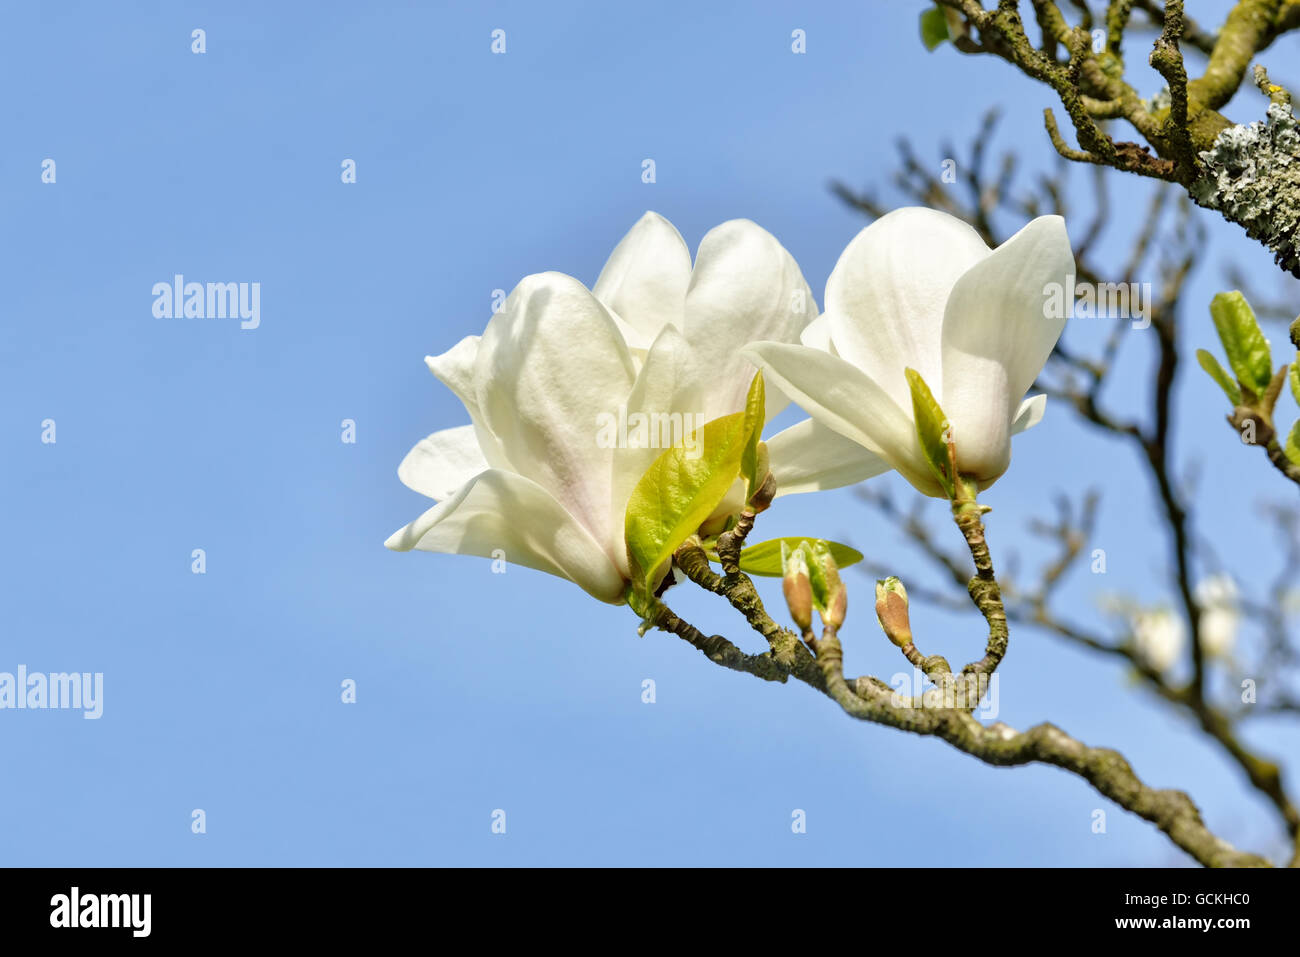 Magnolia tree with big white flowers on blue sky stock photo magnolia tree with big white flowers on blue sky mightylinksfo